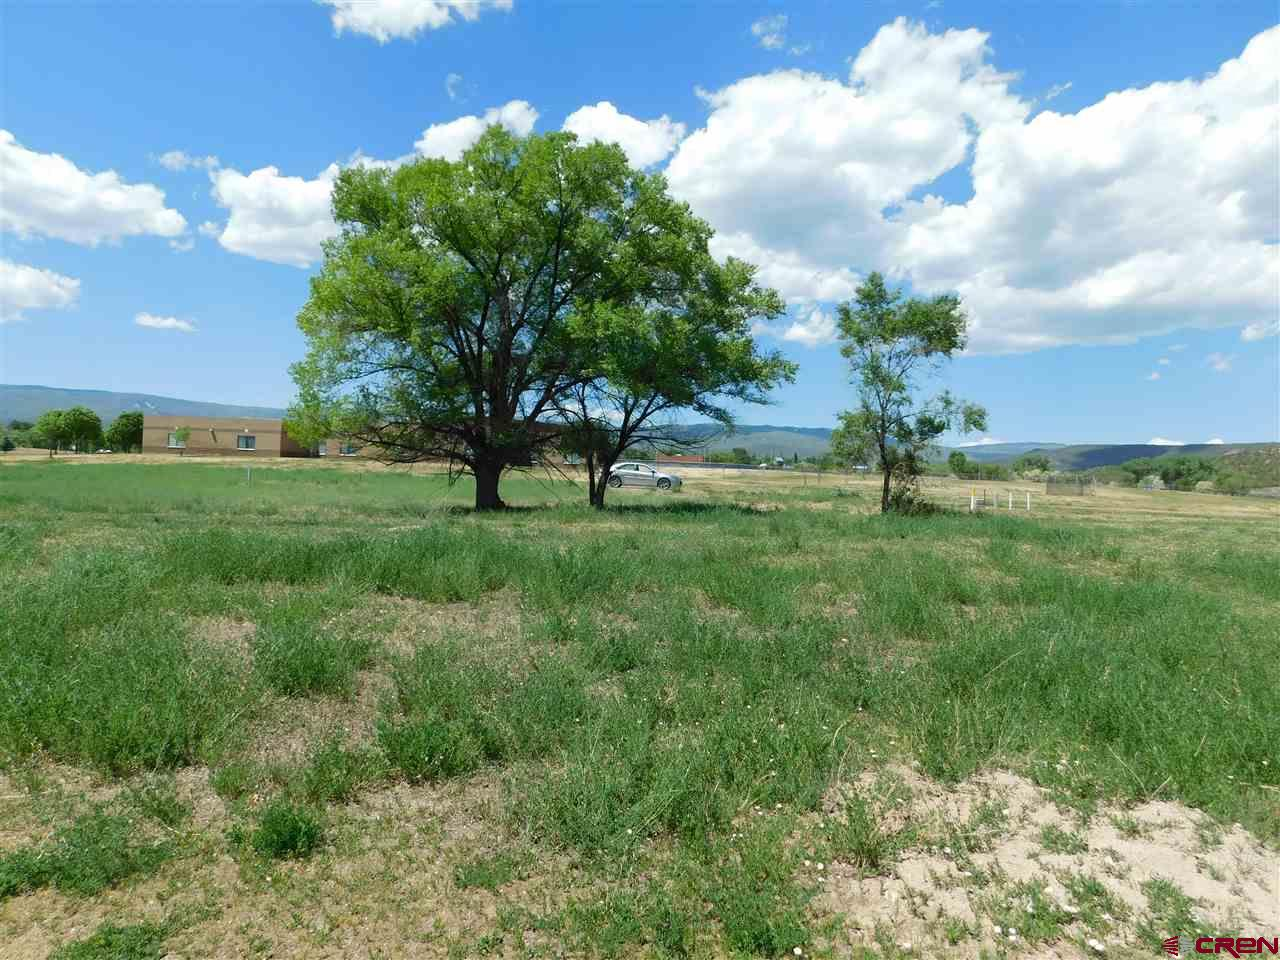 Extremely well priced lot on Deer Creek golf course with good Grand Mesa views! Fantastic location to build your new home on. Close proximity to Cedaredge Middle School, Cedaredge High School, walking trail, Club house and other Town of Cedaredge amenities.